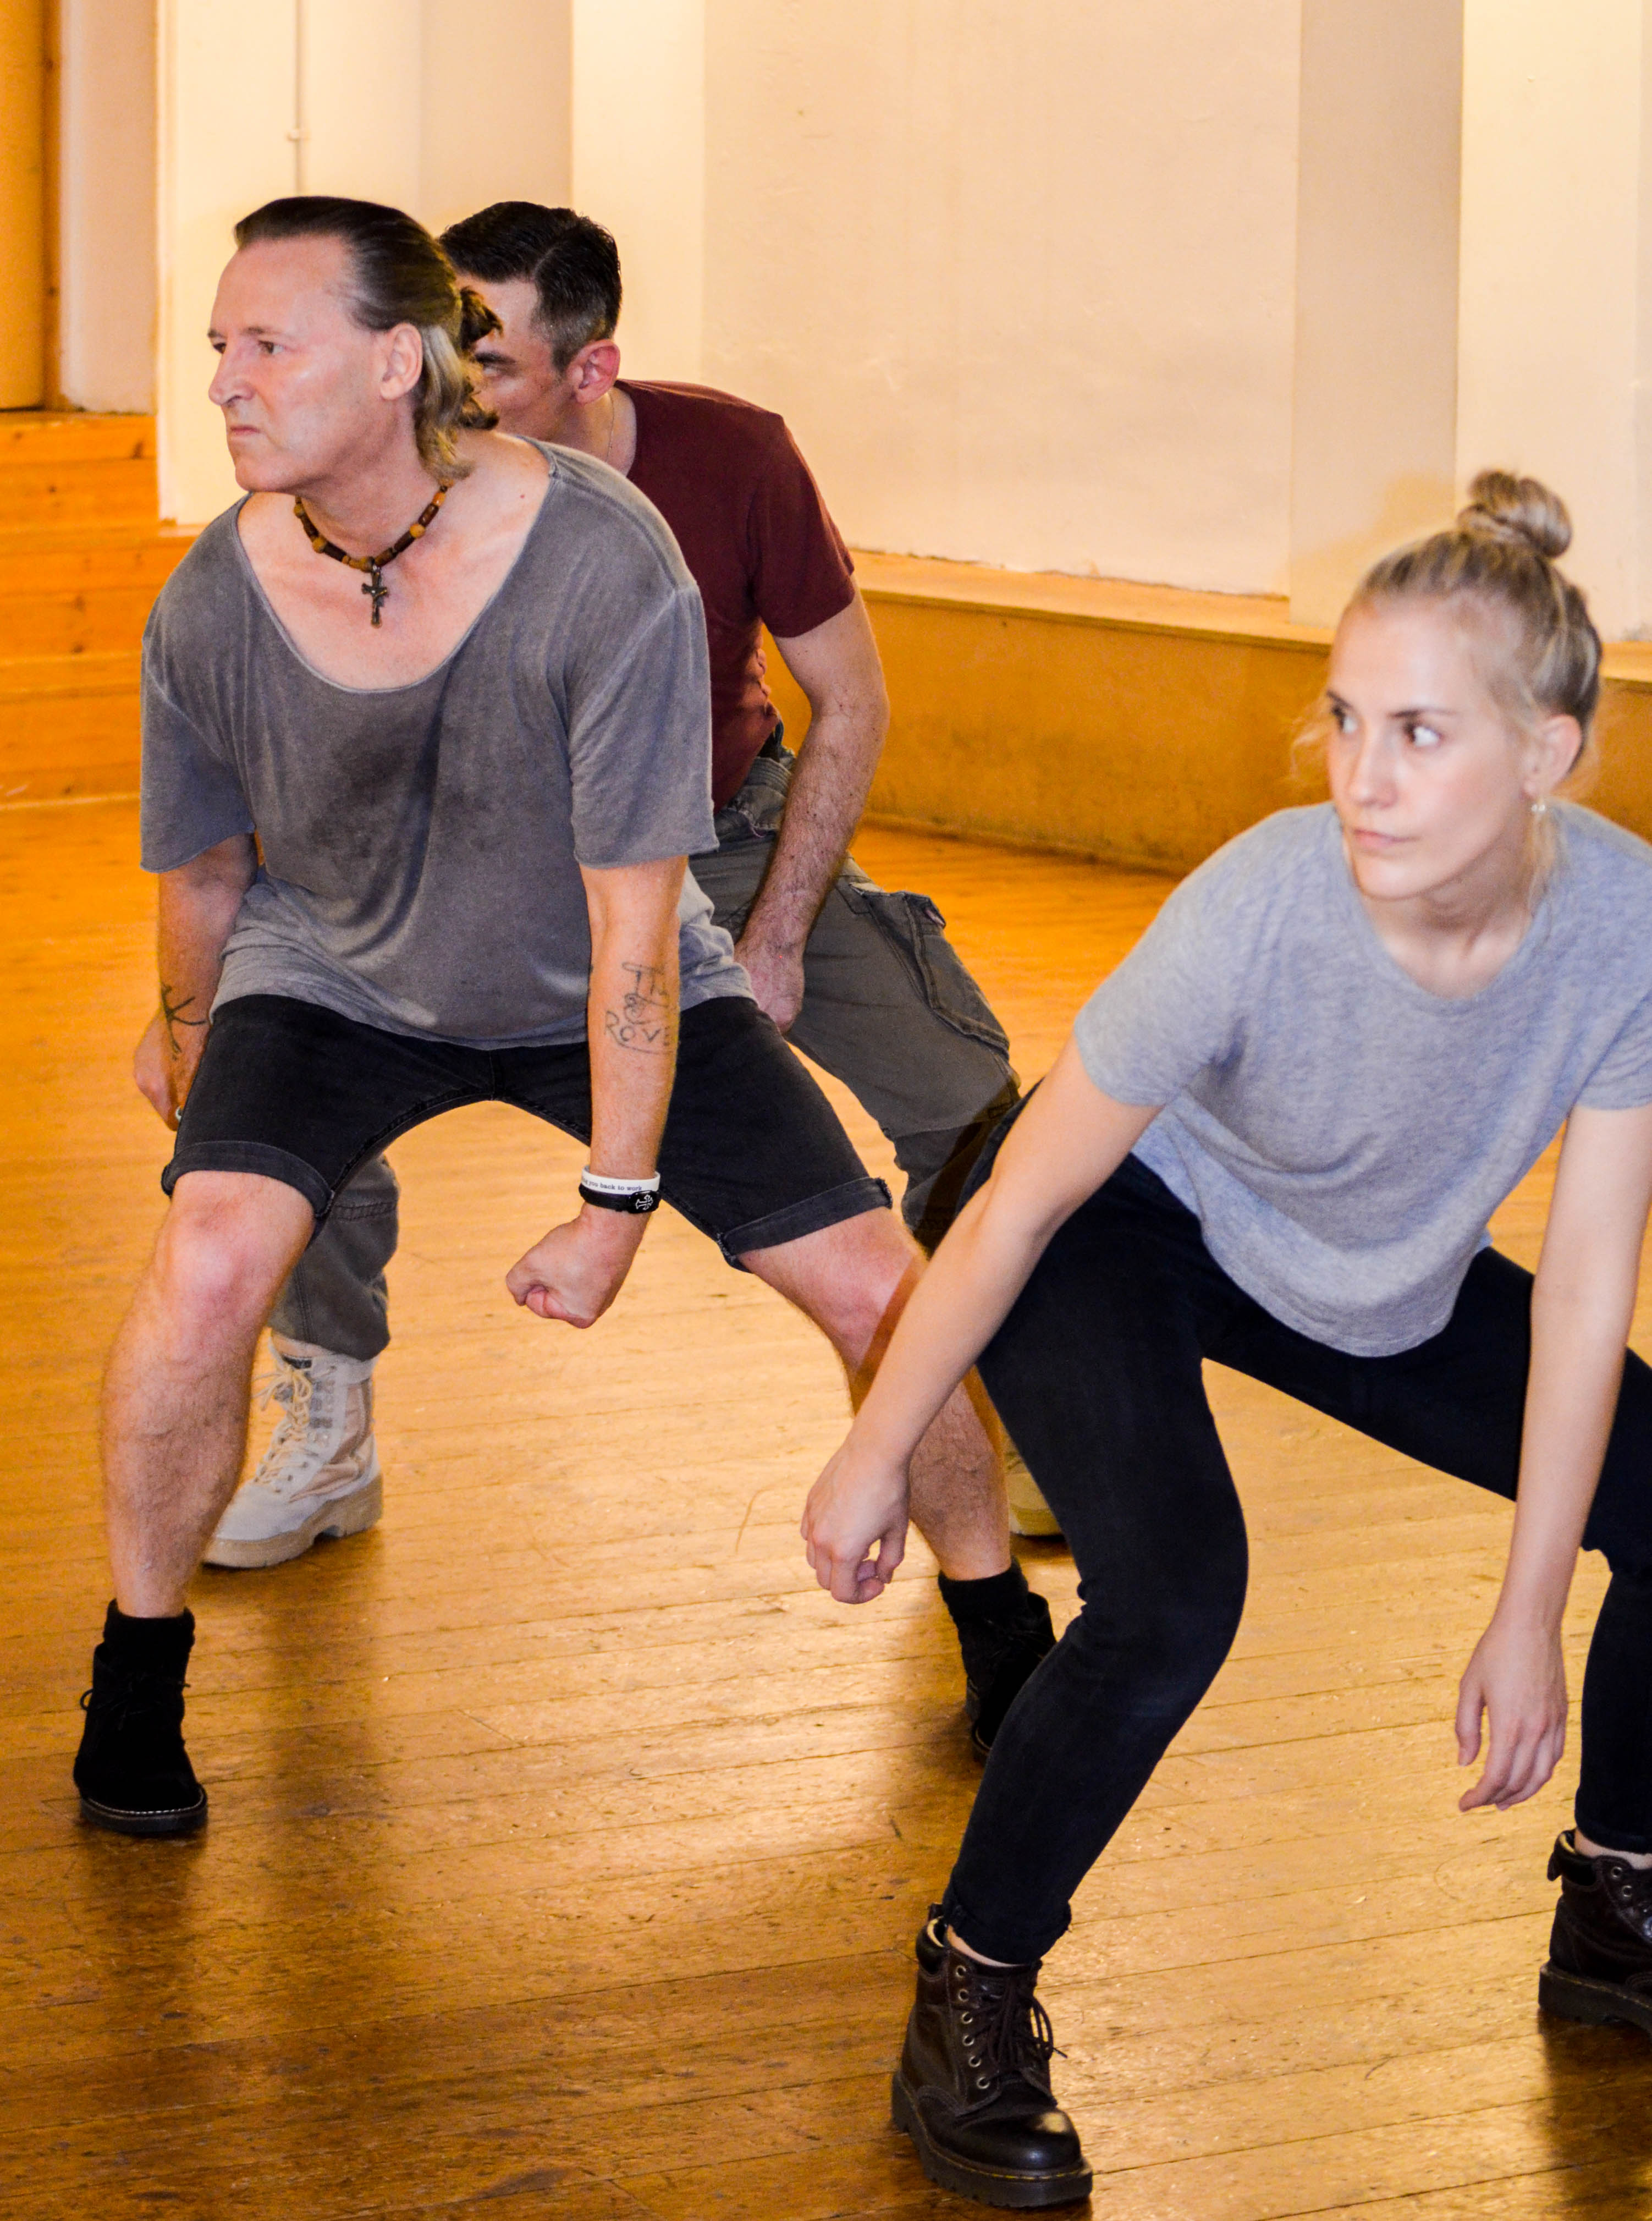 Soldier-on-dance rehearsals-at dance-attic-studio (1 of 1)-2